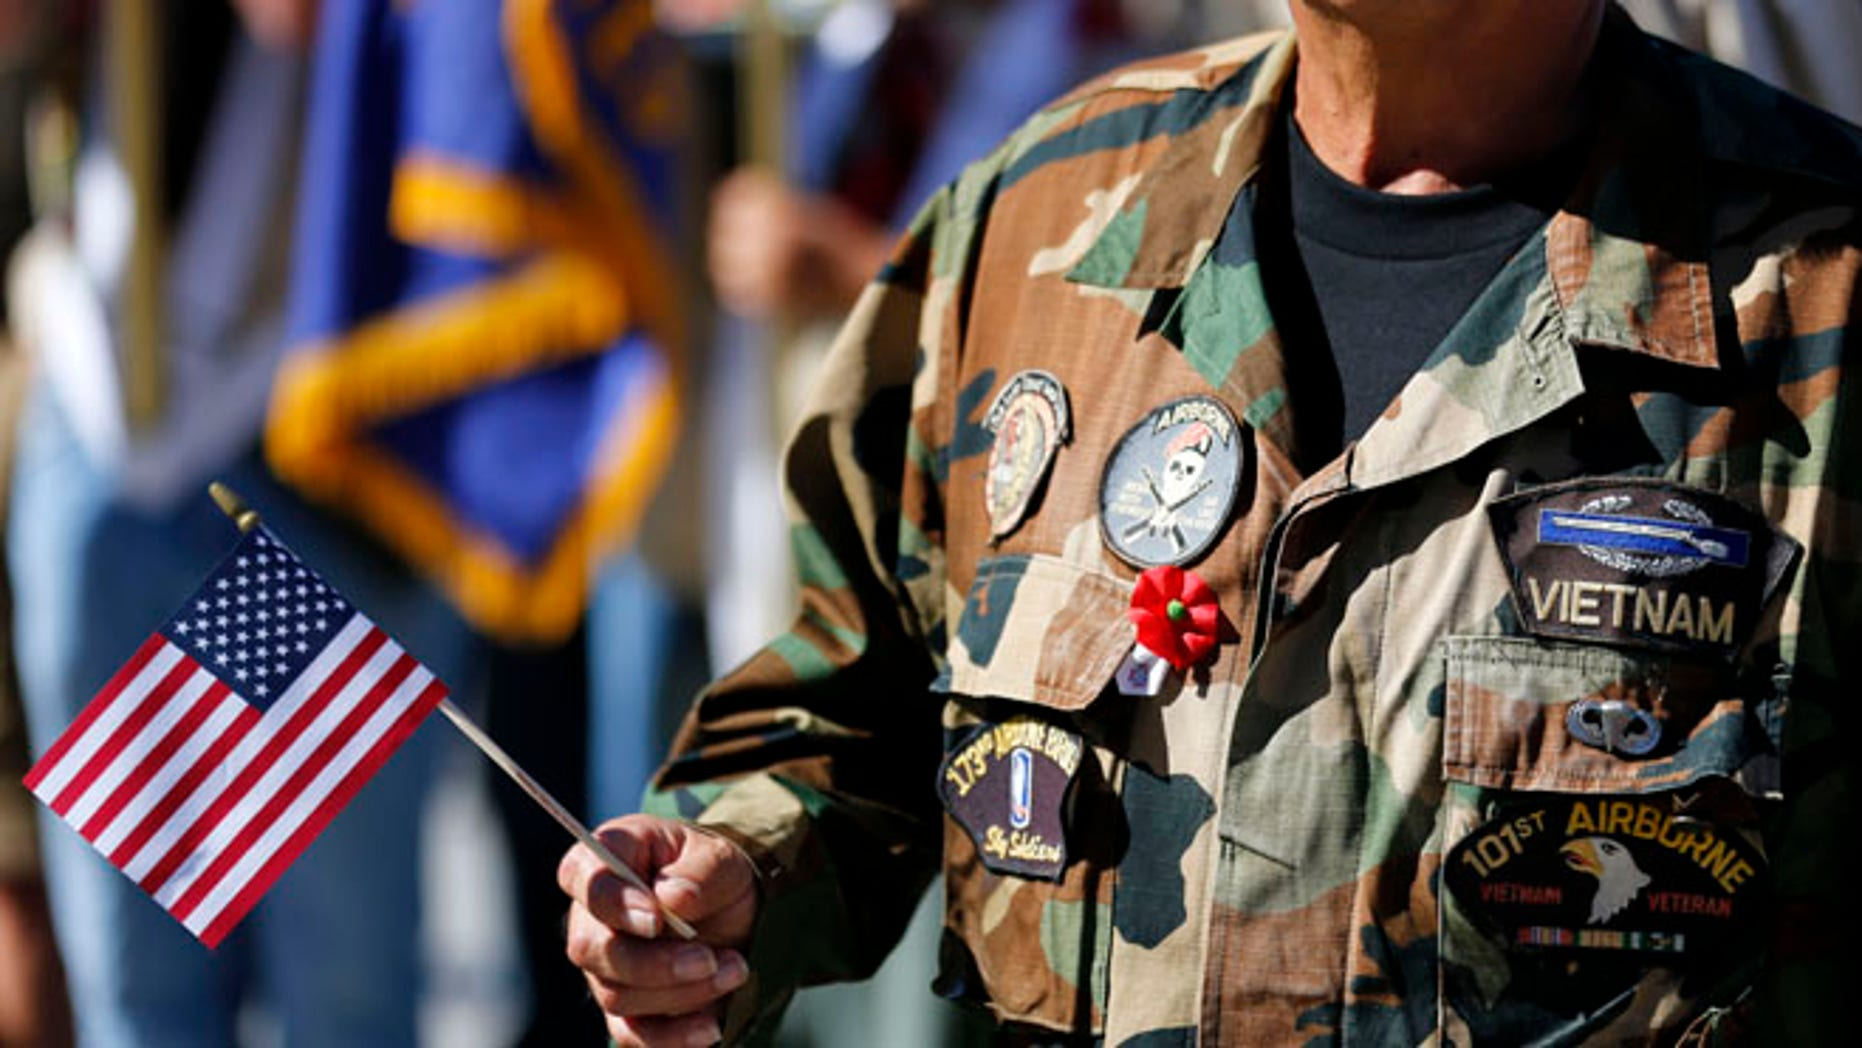 Nov. 11, 2013: A Vietnam veteran holds an American flag as he marches during the annual Veterans Day Parade in San Diego, Calif.